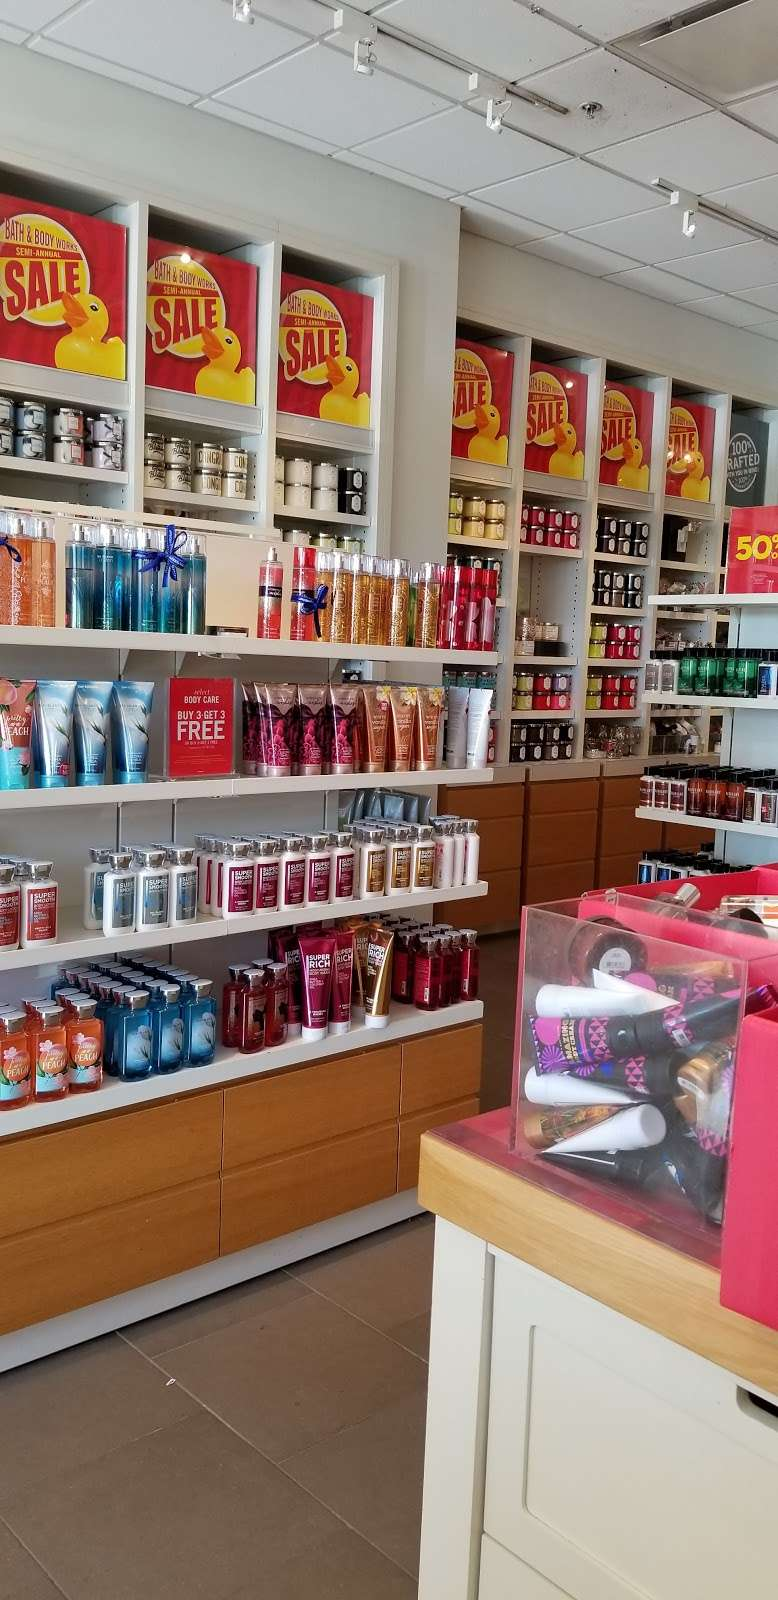 Bath & Body Works - home goods store  | Photo 3 of 6 | Address: 164 Colony Pl, Plymouth, MA 02360, USA | Phone: (508) 747-9672